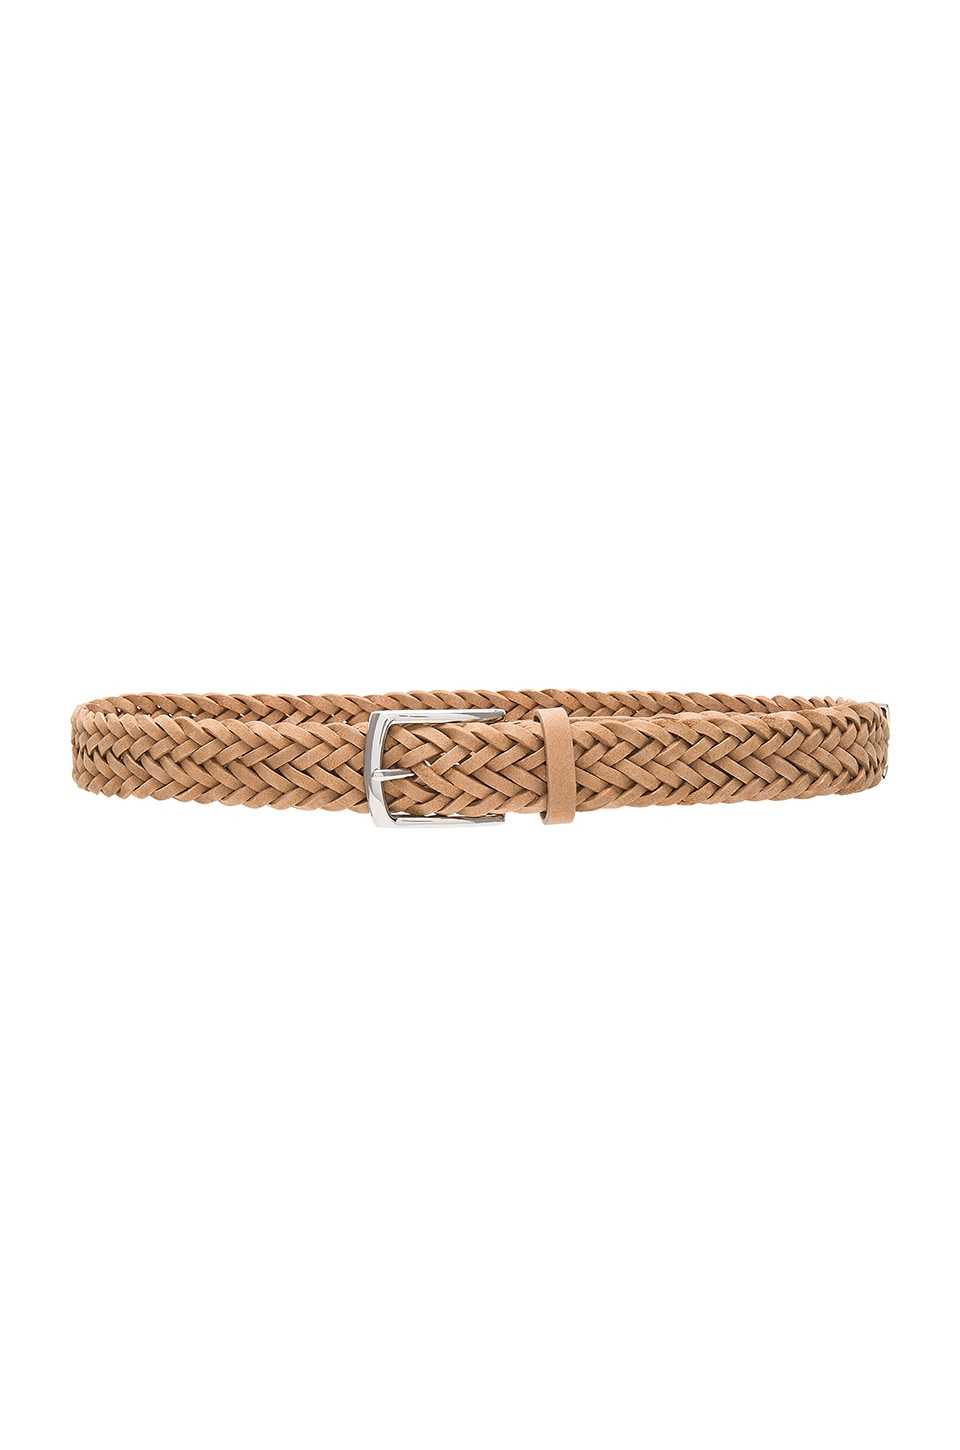 Rag & Bone Slim Braided Belt in Natural